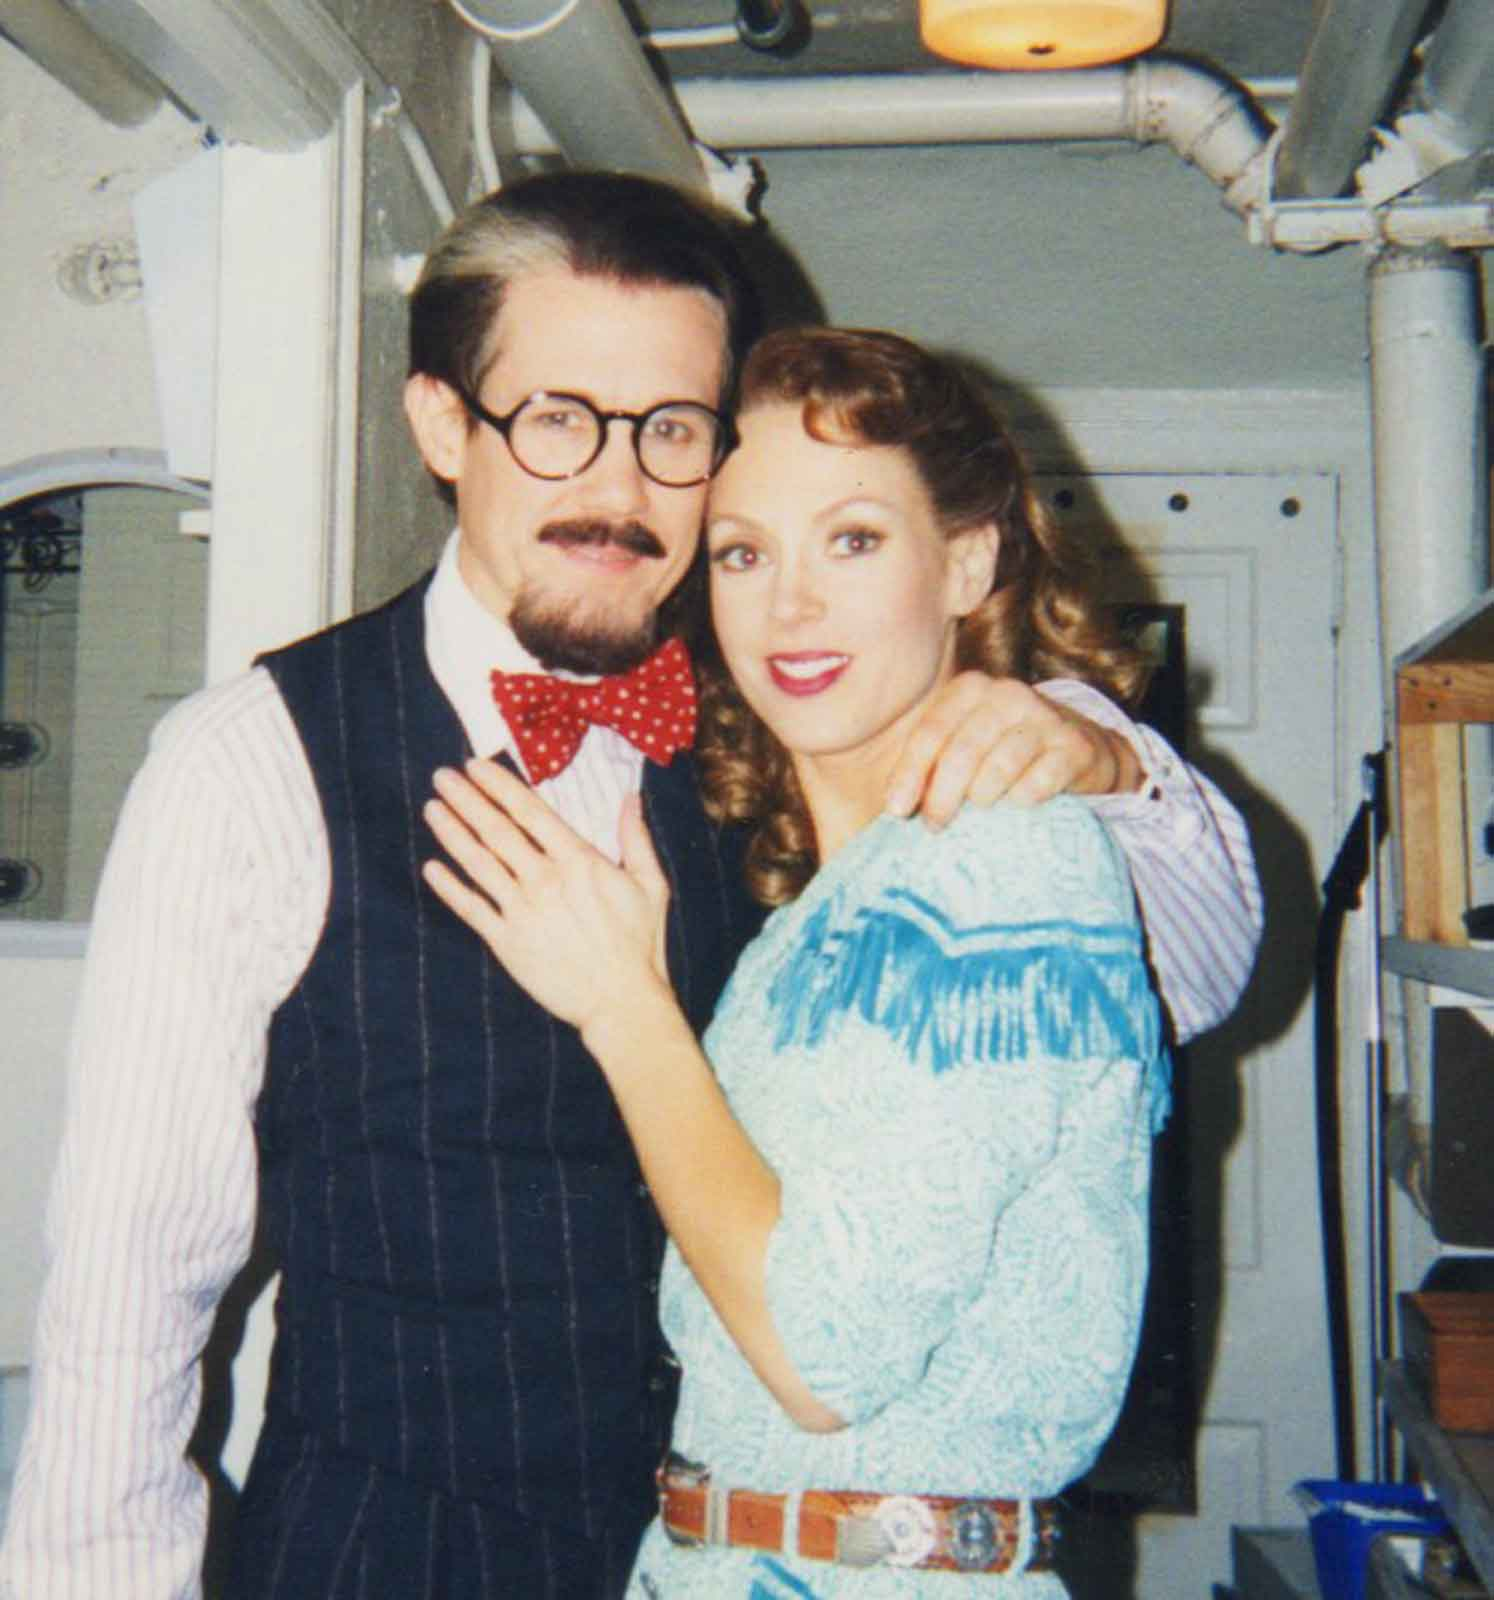 Jimmy Walton and Stacey Logan as Bobby and Polly for the filming of thePBSCrazy for You. They are backstage and in costume.